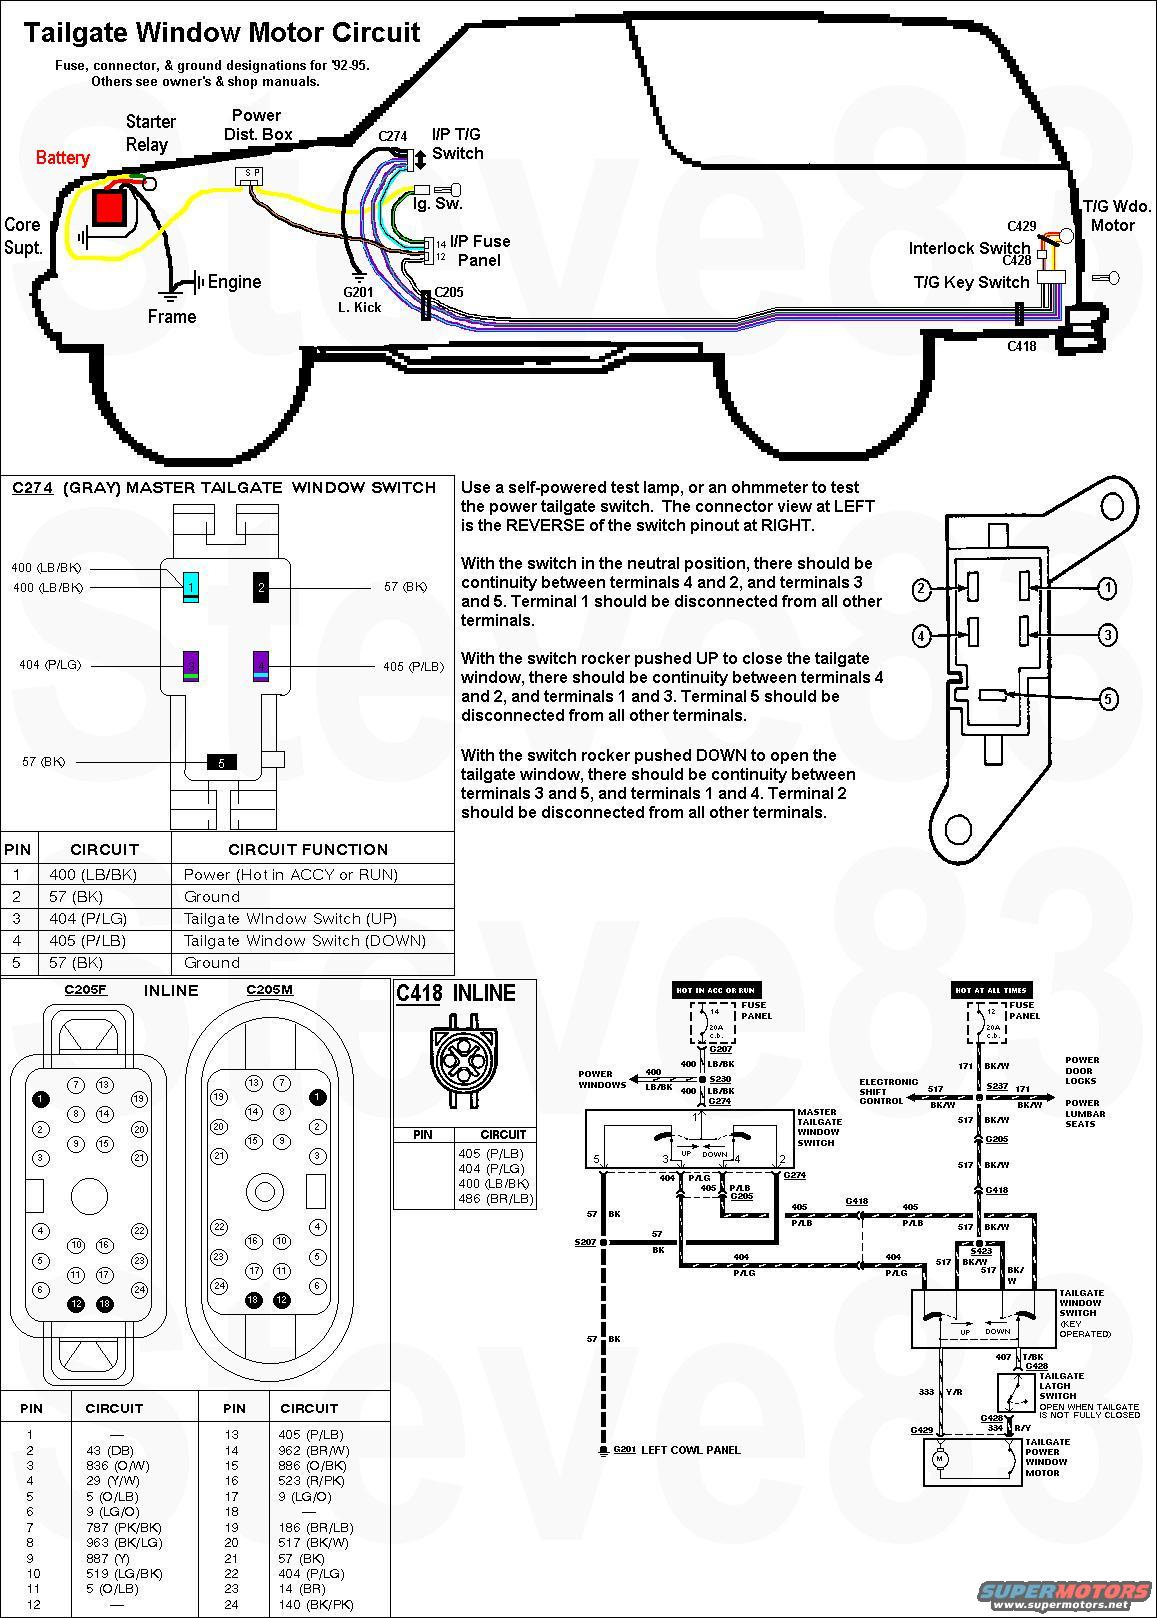 1990 ford bronco wiring diagram nuheat thermostat 89 ii engine get free image